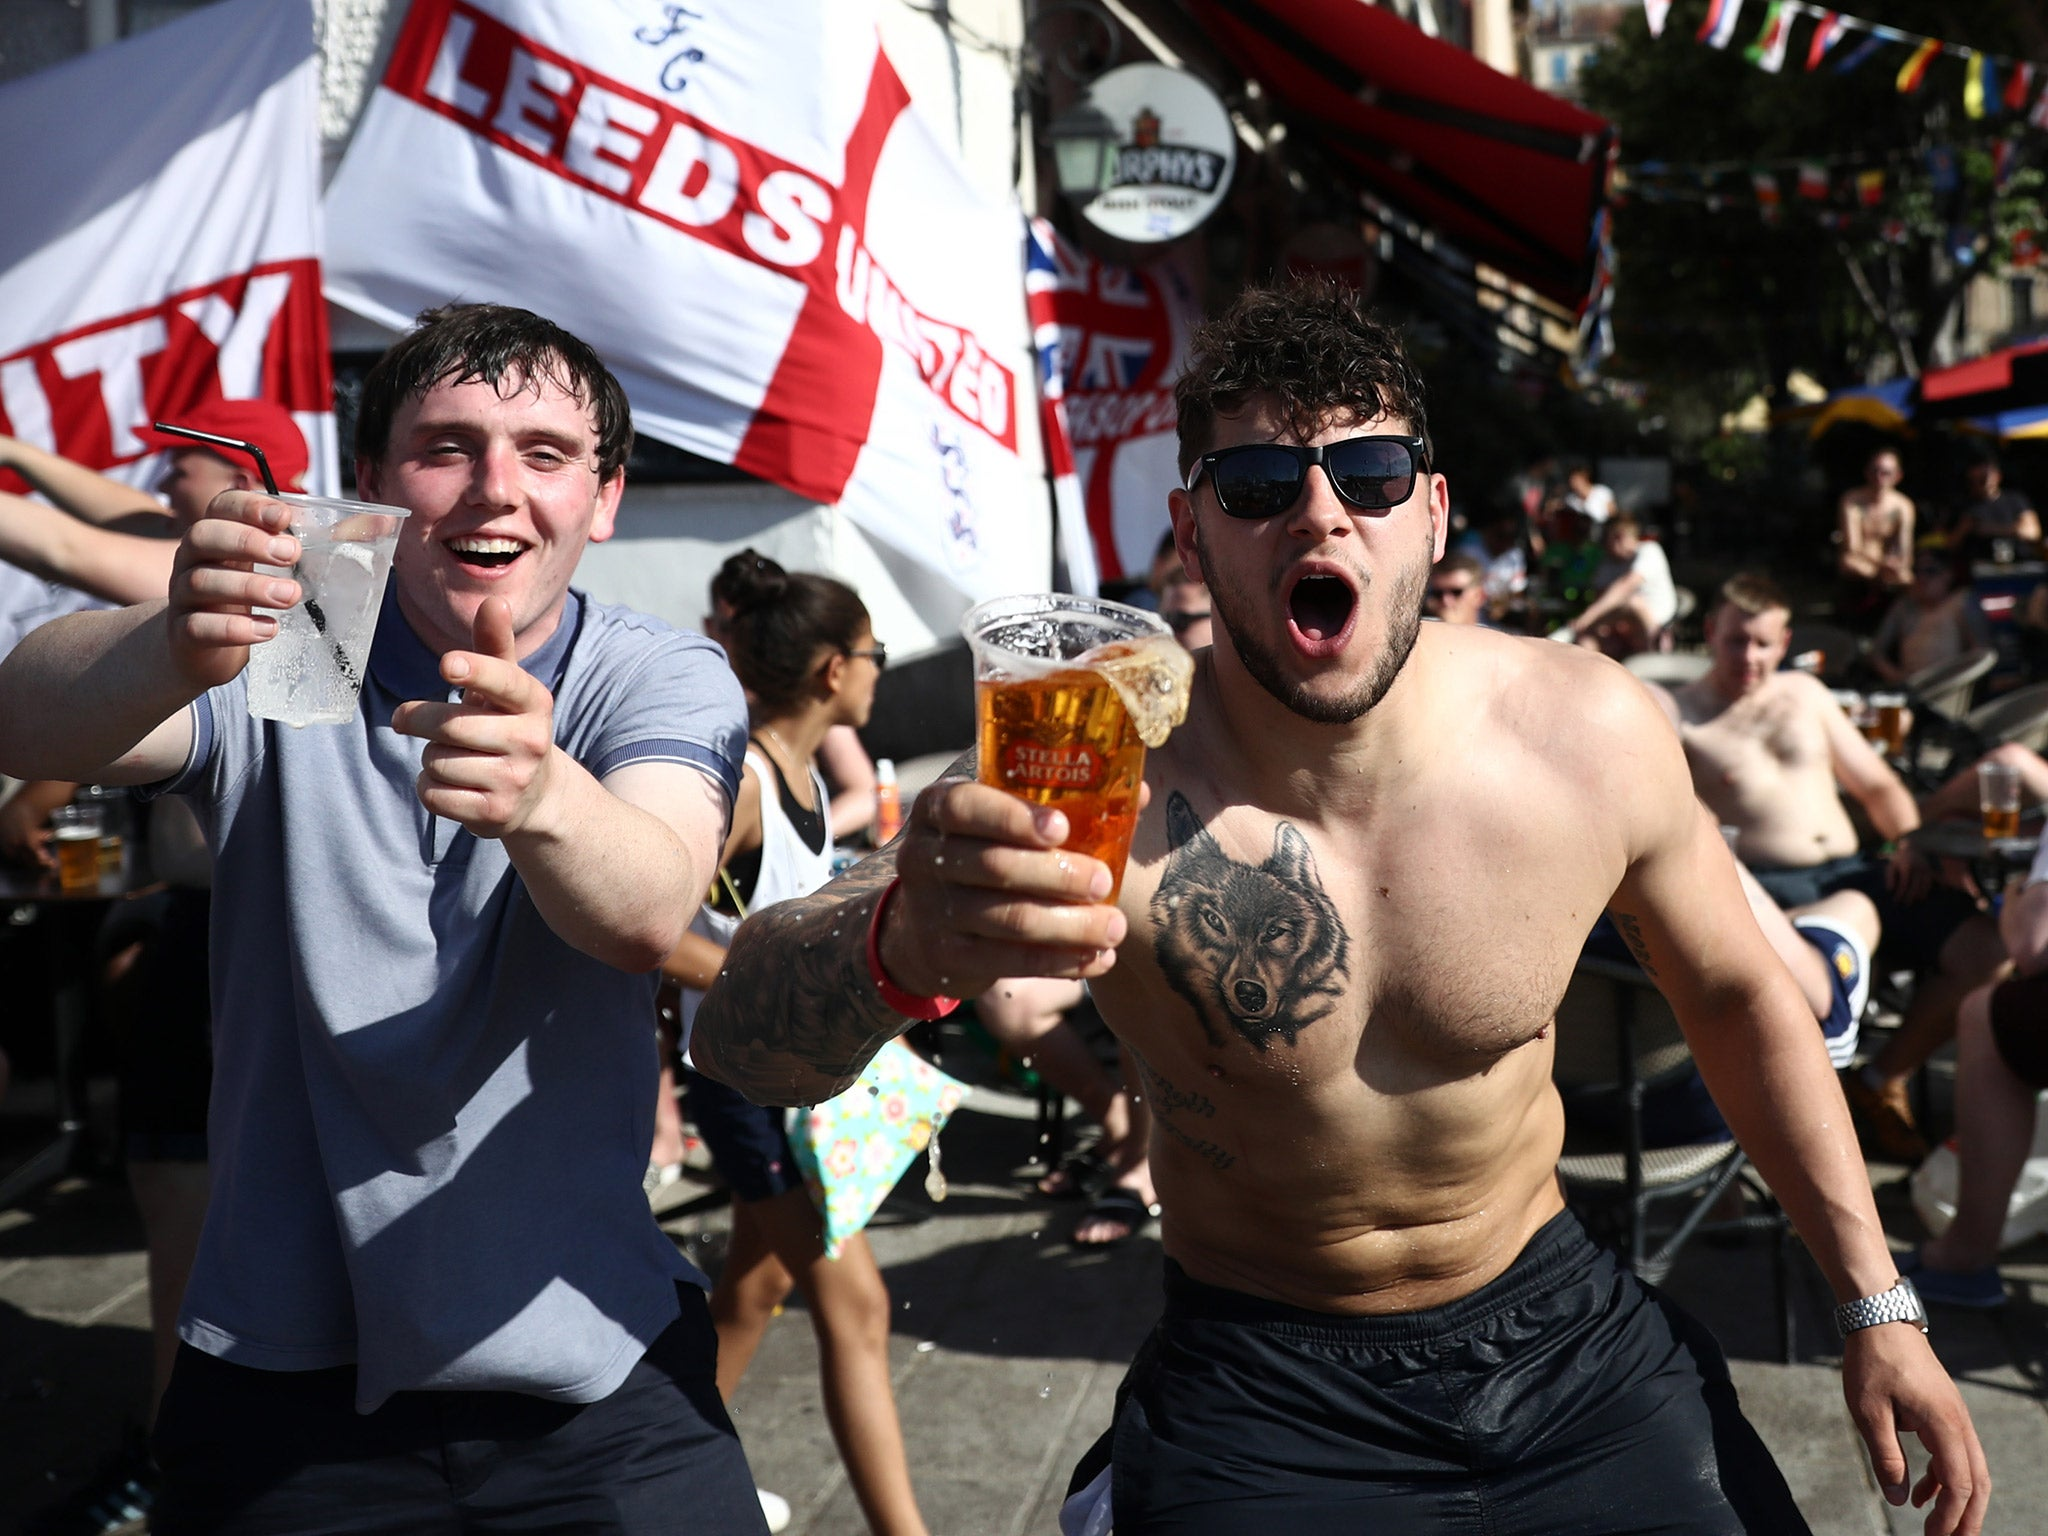 fan violence in international soccer essay The game of football has been associated with violence since its beginnings in  13th  research findings show that while some of the more violent european  fans  been criticised for their xenophobic approach to the coverage of  international.